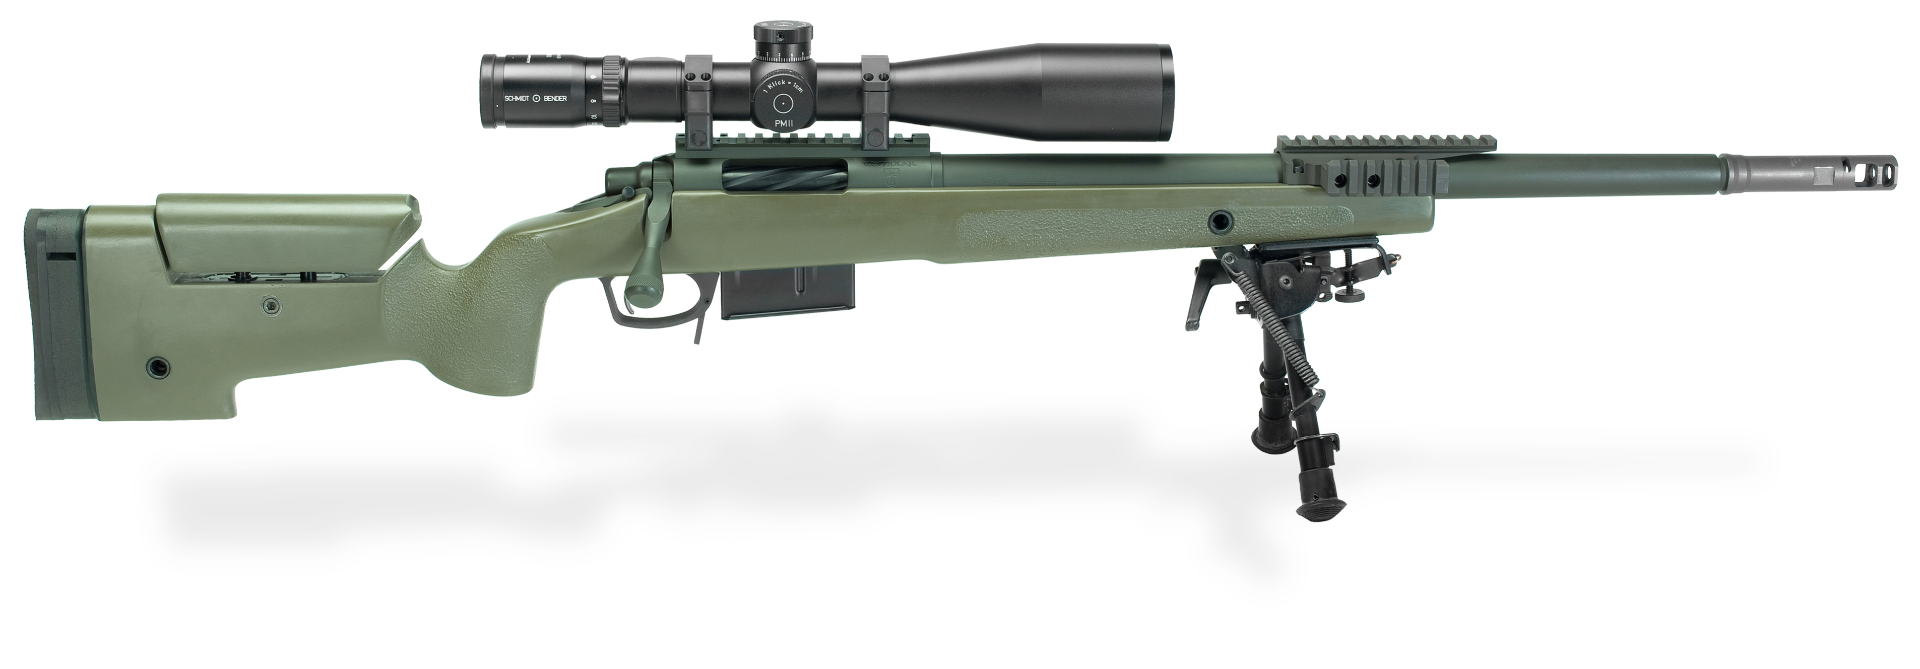 Transparent rifle. Fbi hrt